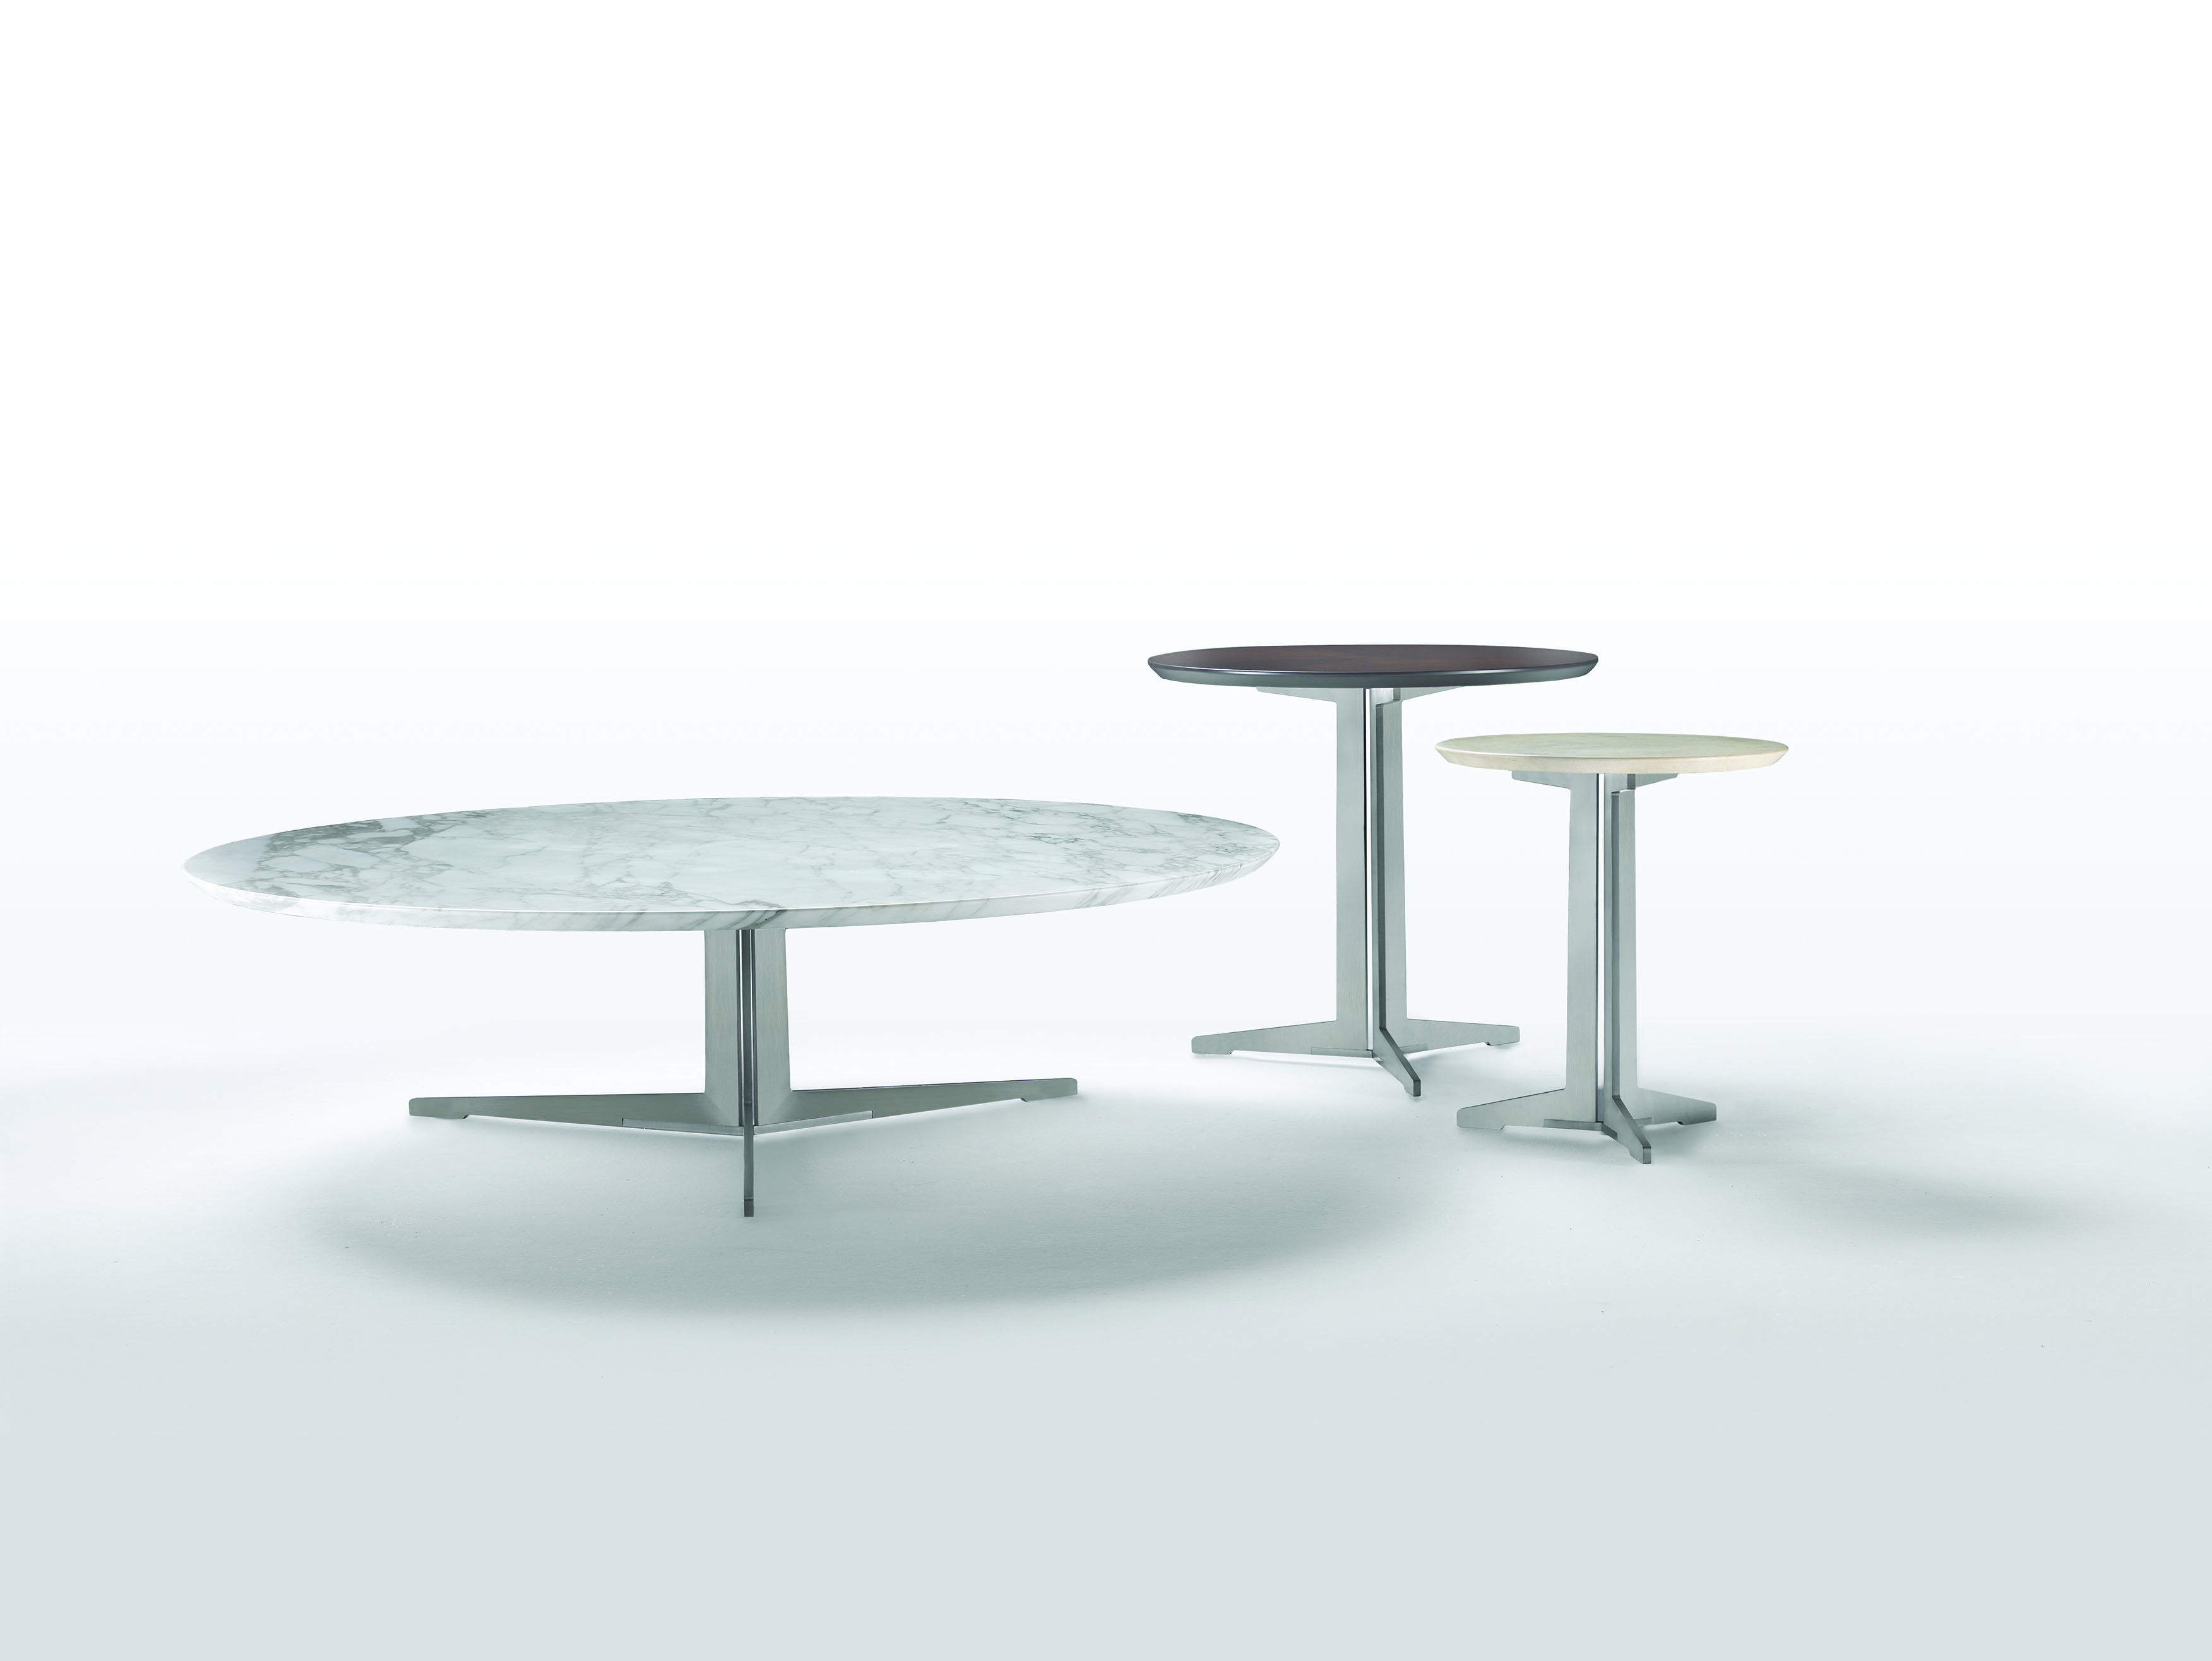 Flexform Fly Oval And Round Small Tables With Frame In Metal Top In Wood Veneers Or Marble Designed By Antonio Citterio [ 2631 x 3504 Pixel ]